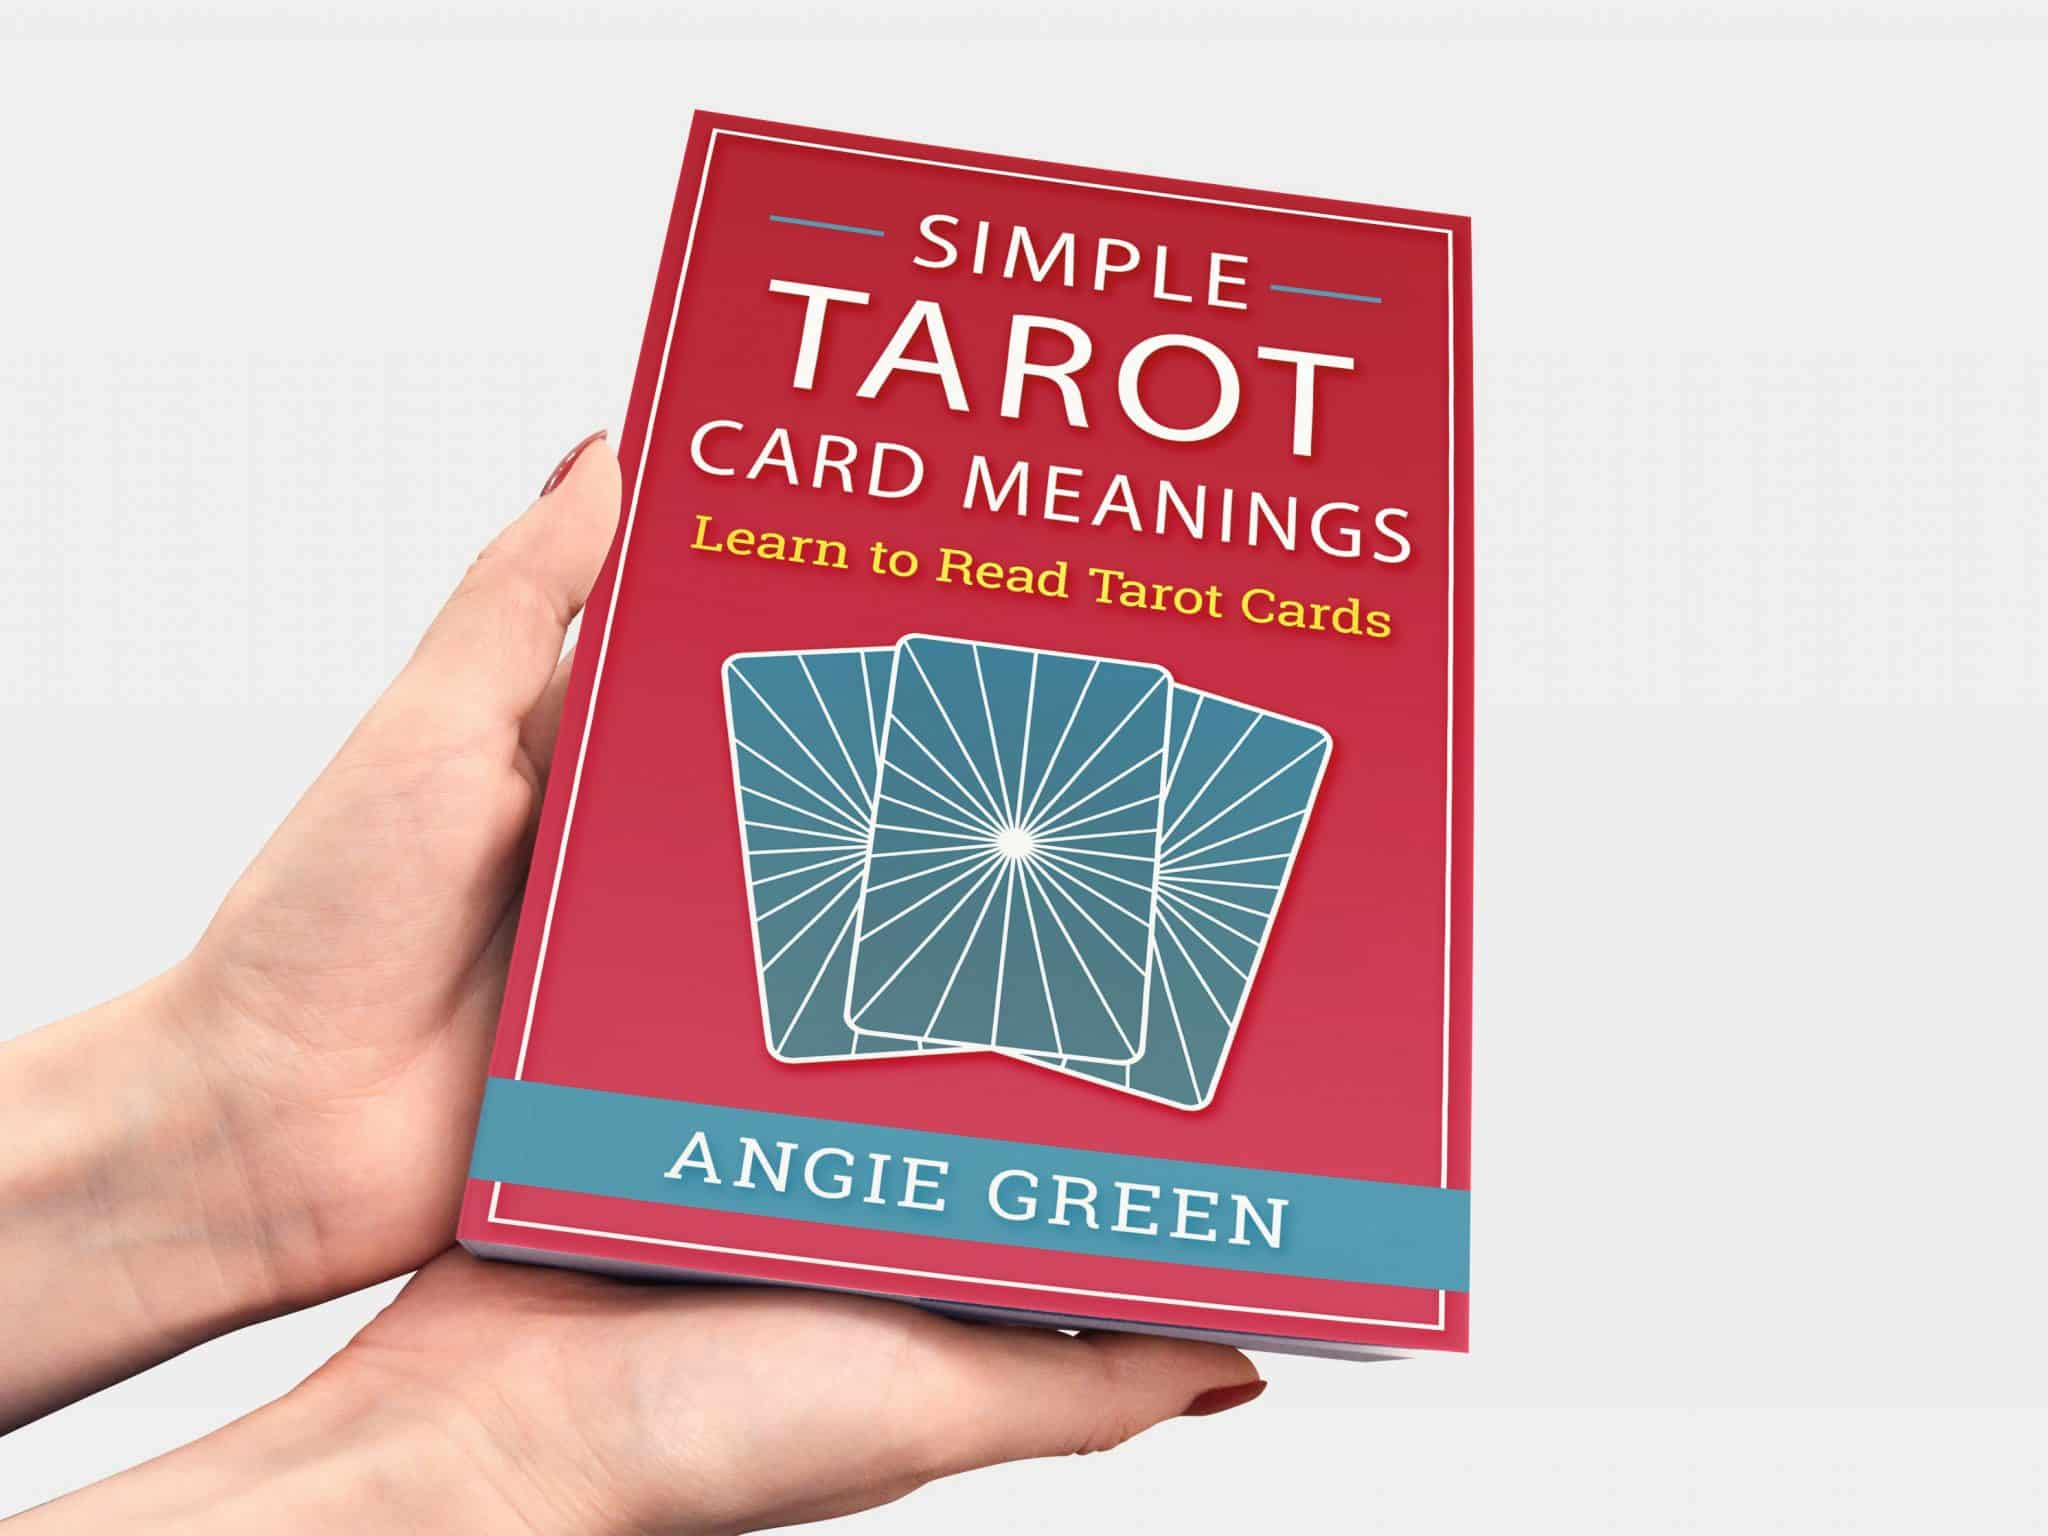 graphic about Printable Tarot Cards With Meanings referred to as Uncomplicated Tarot Card Meanings (print e-book deal)